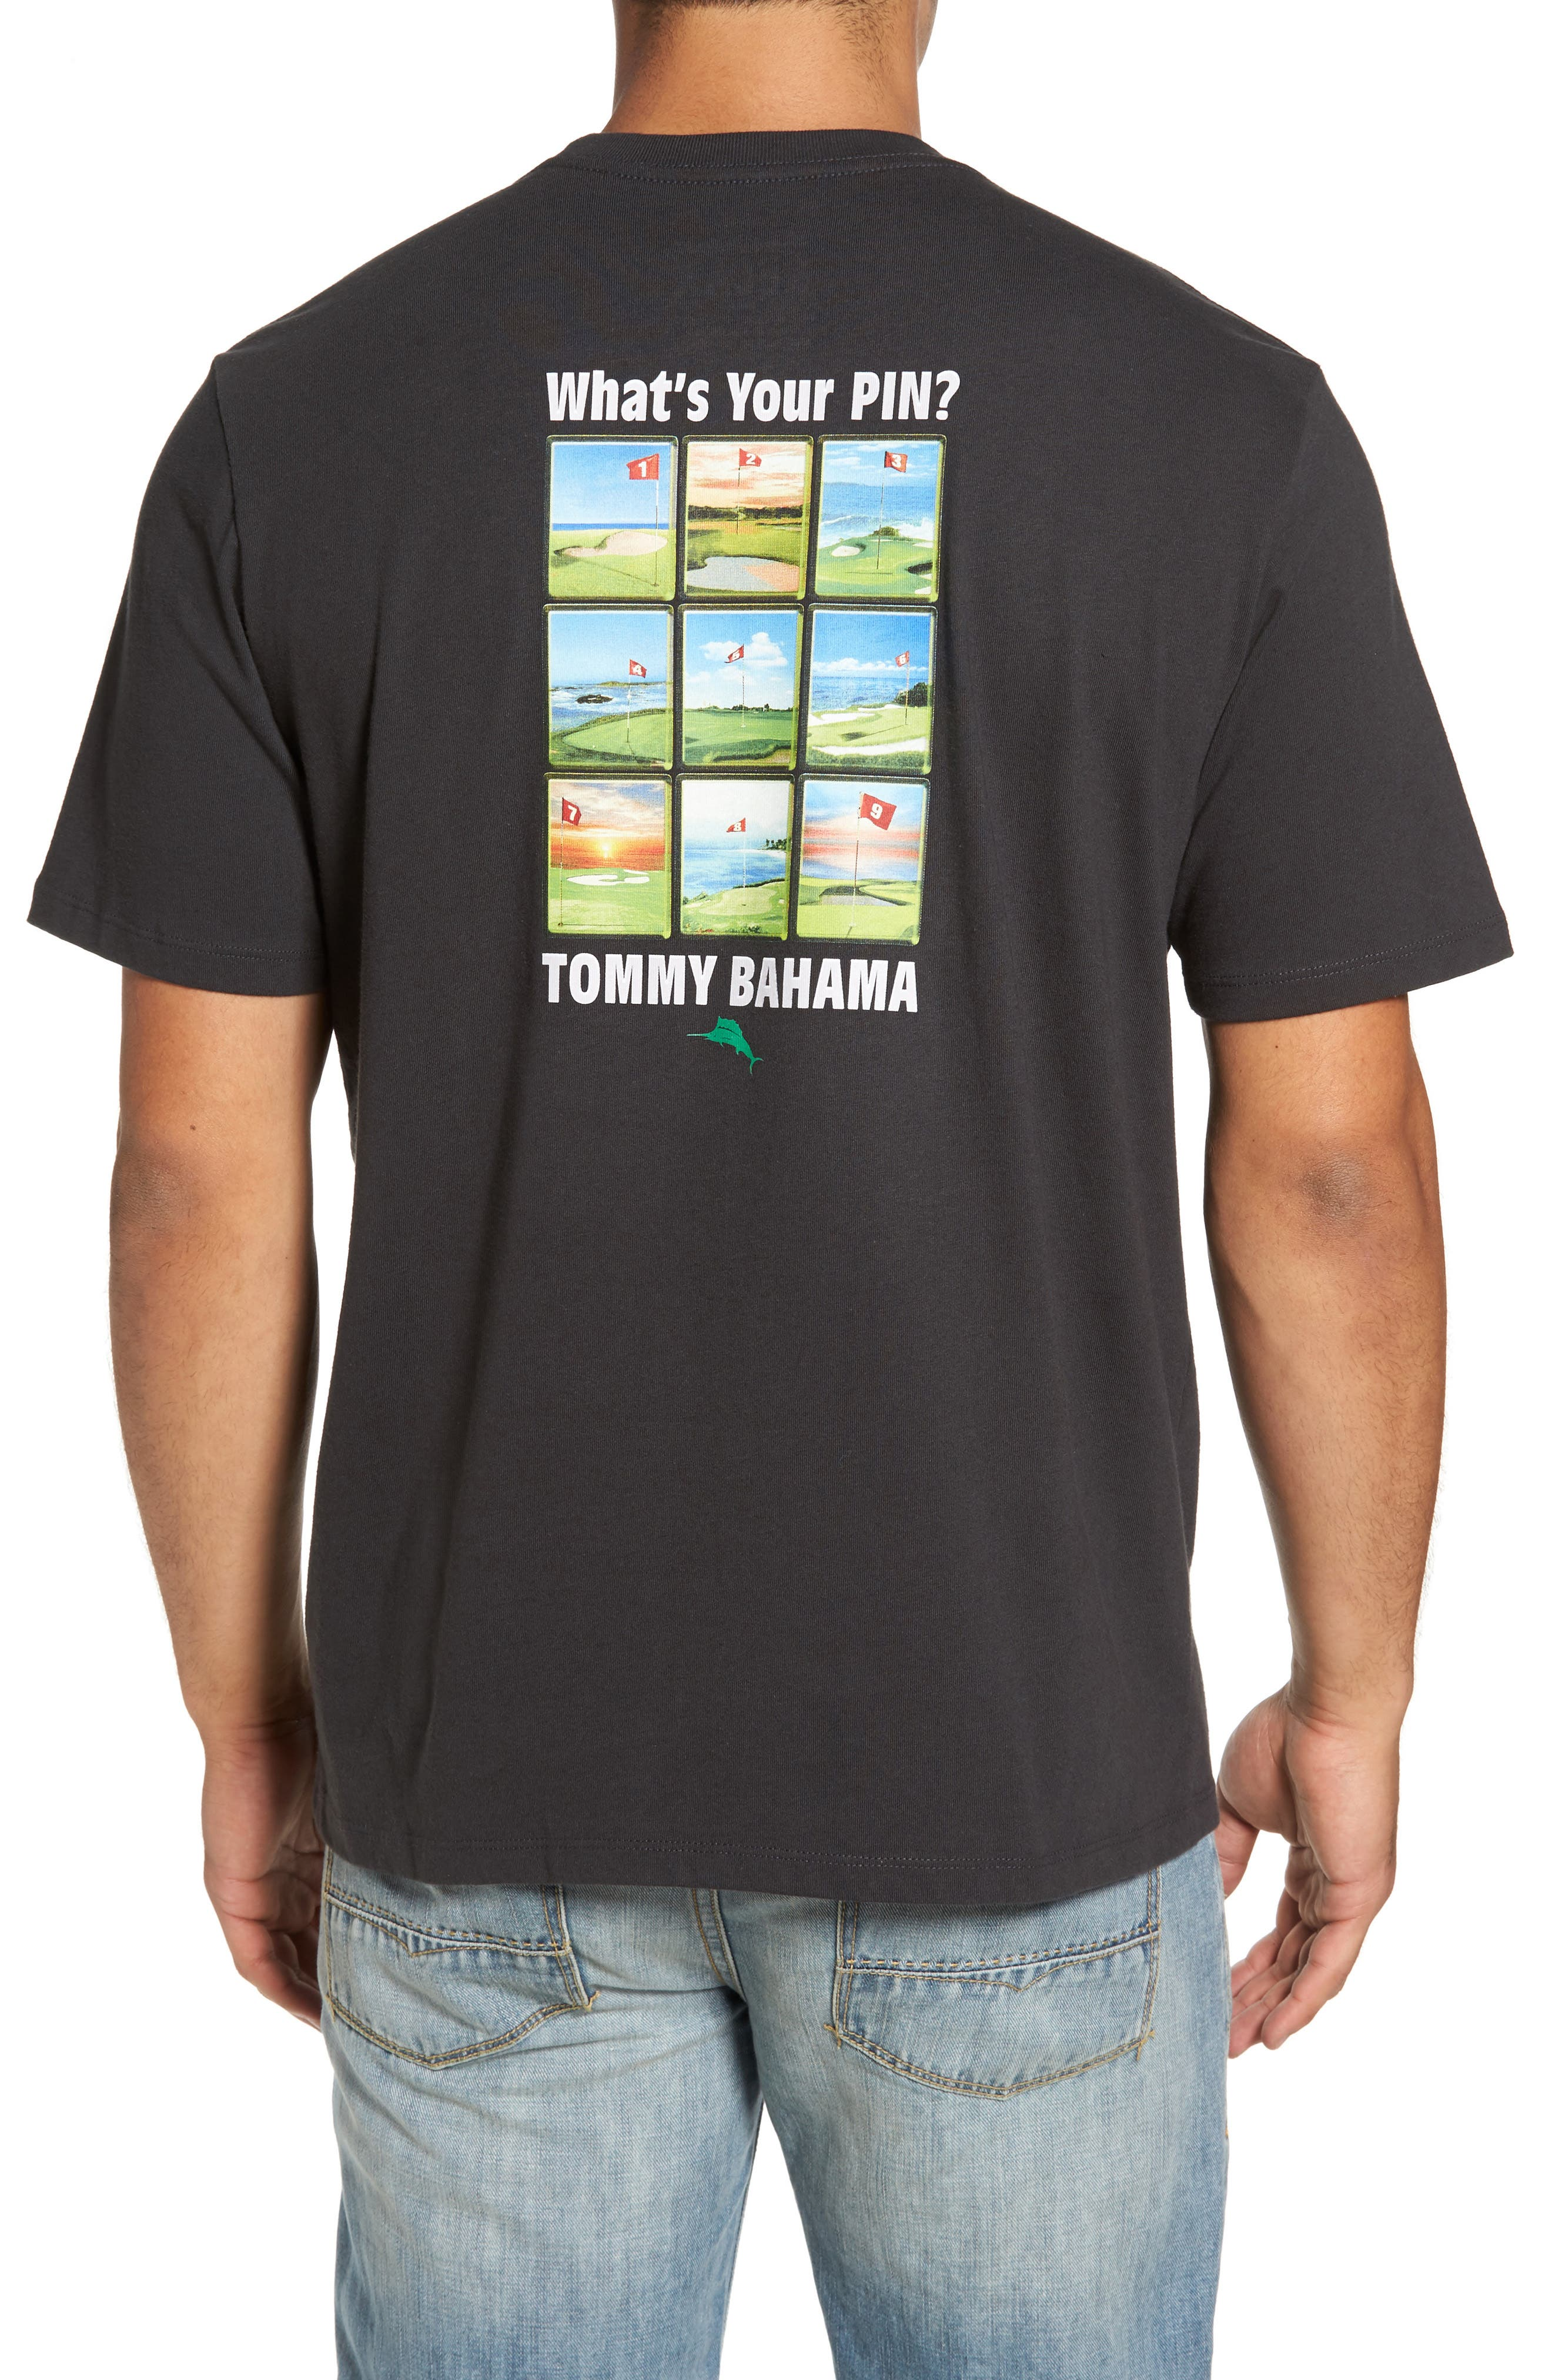 Alternate Image 1 Selected - Tommy Bahama What's Your Pin Graphic T-Shirt